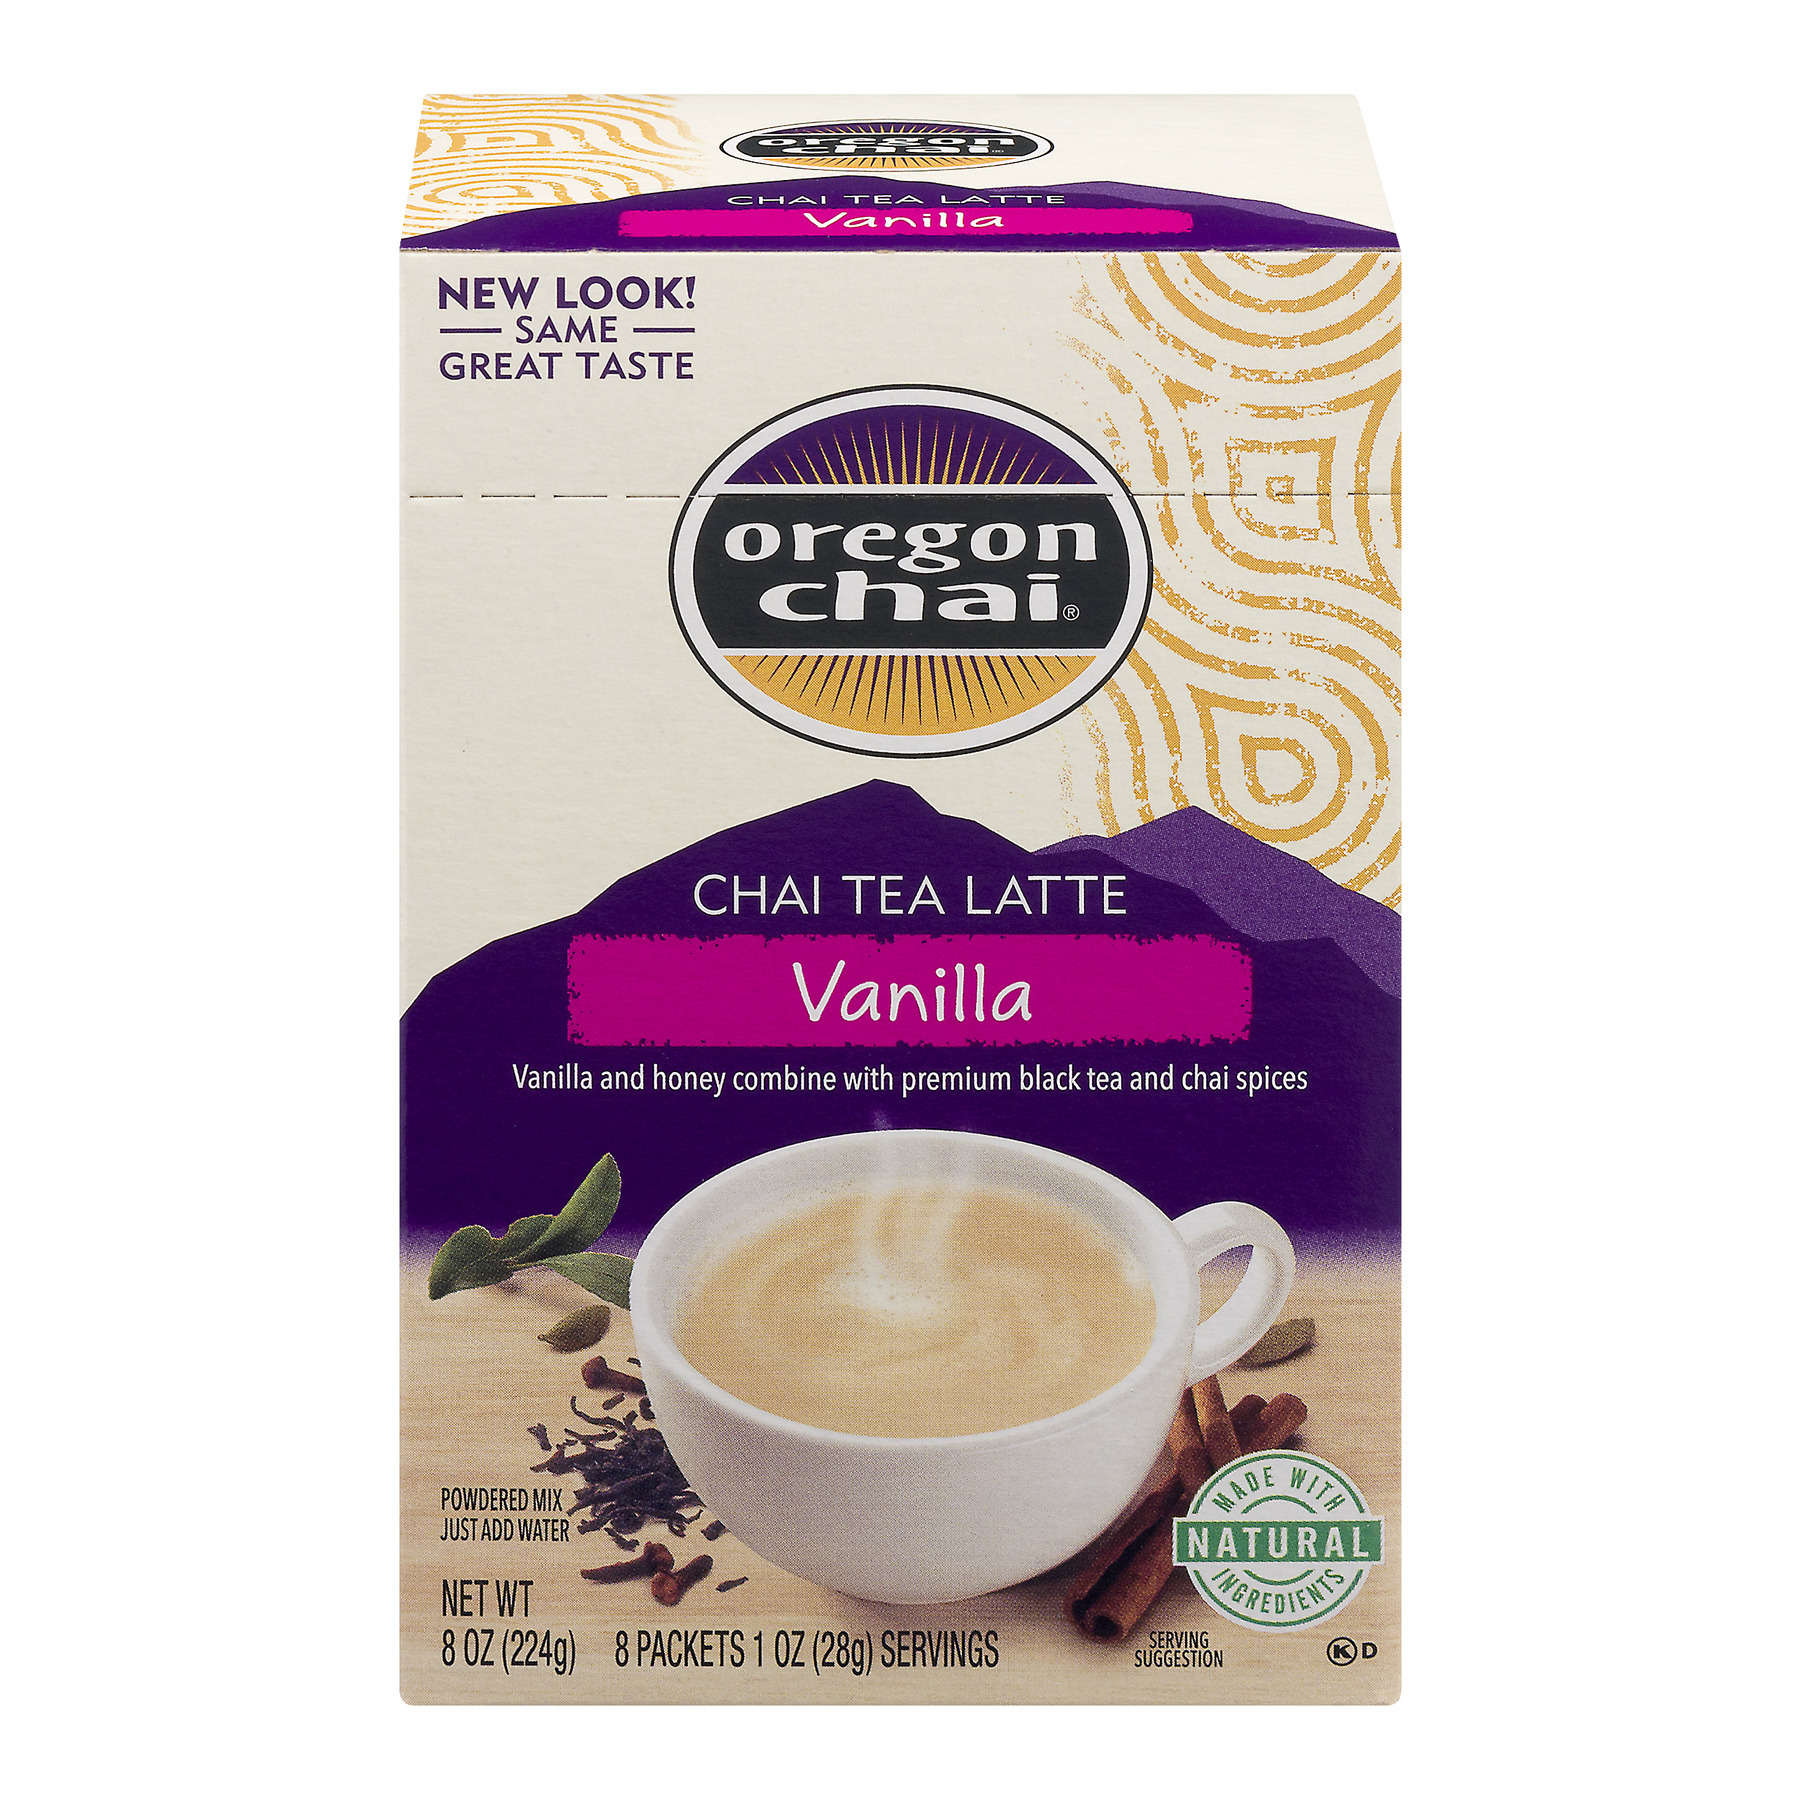 Oregon Chai Chai Tea Latte Vanilla Powdered Mix Packets - 8 CT1.0 OZ